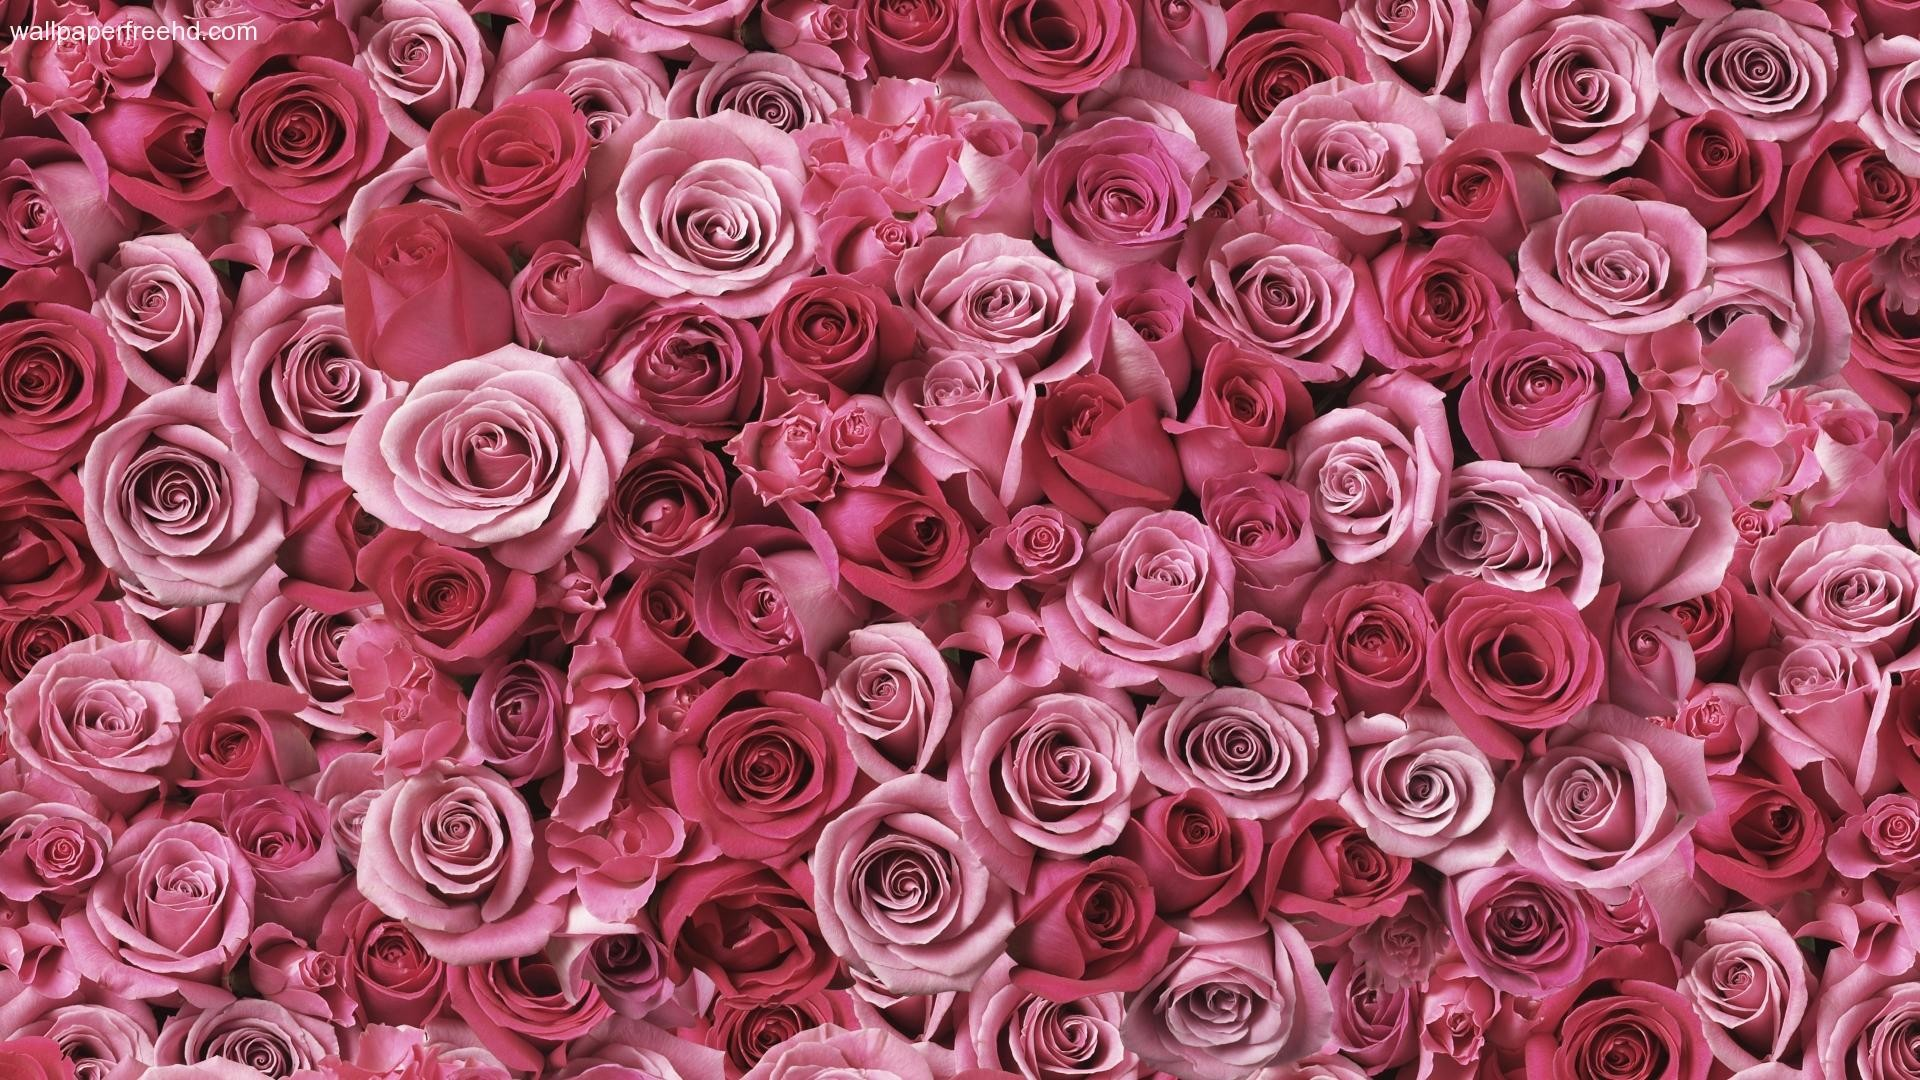 Pink floral wallpapers 57 images 1920x1200 pink flowers beauty wallpaper flowers pink flower hd desktop wallpapers mightylinksfo